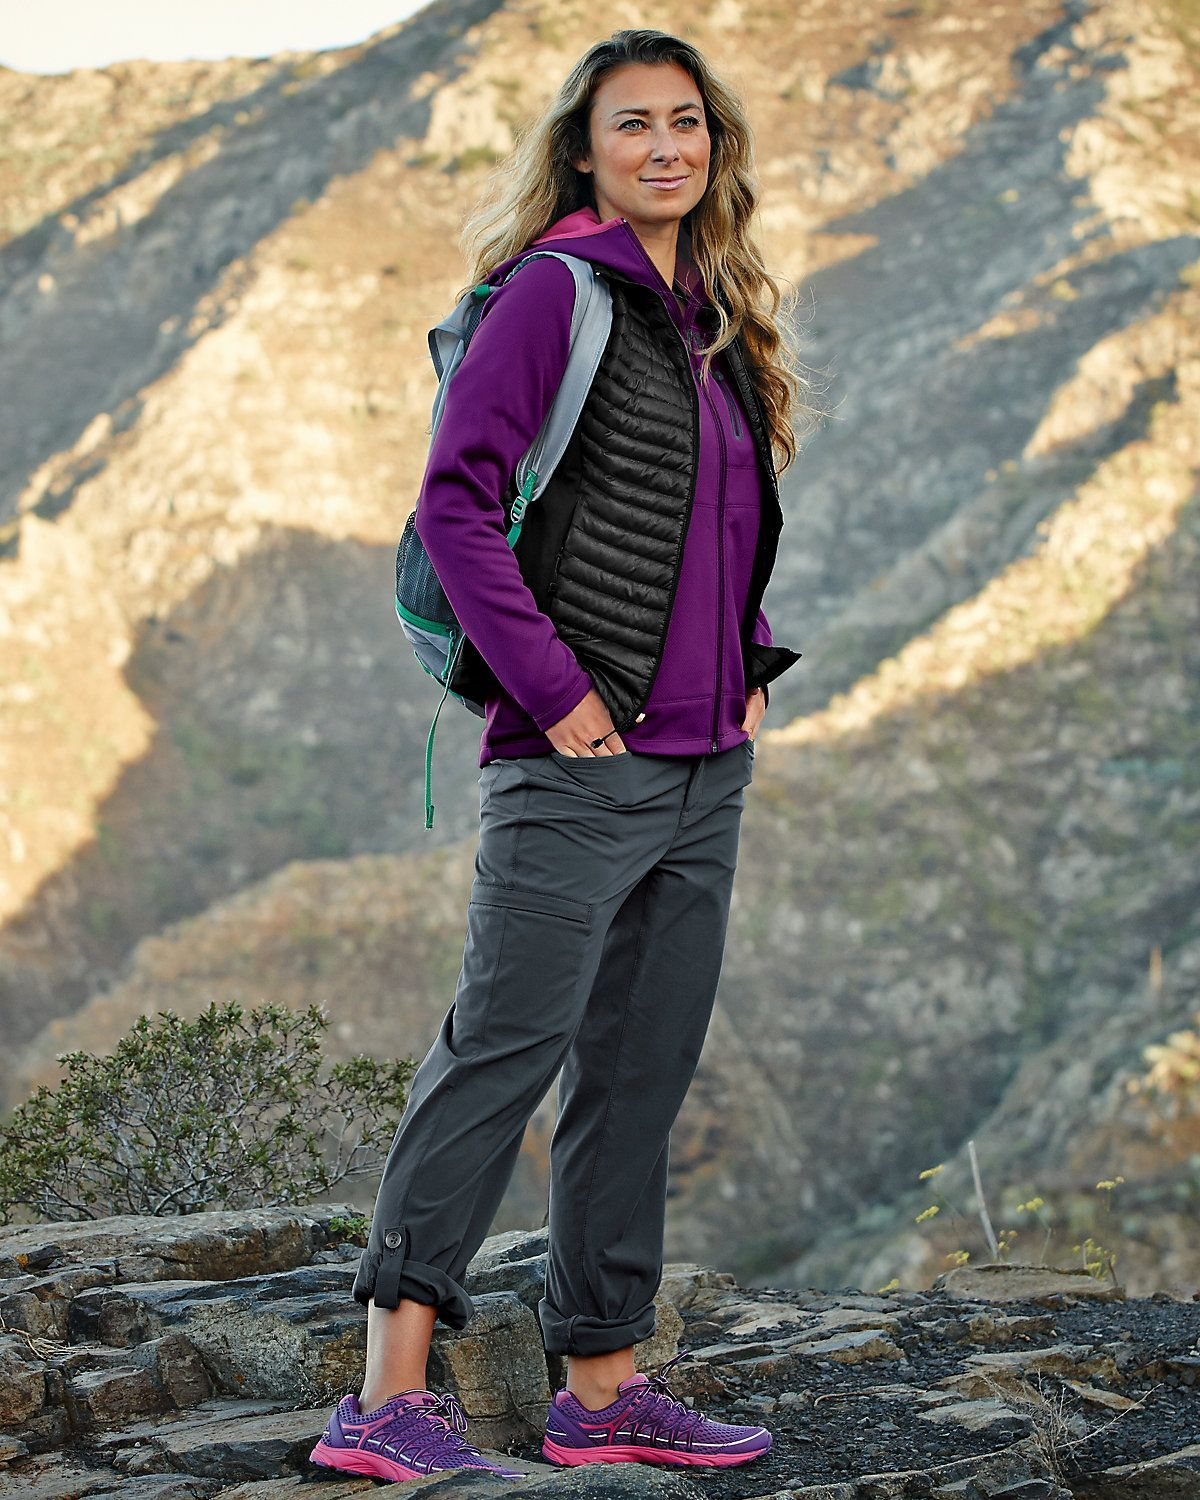 Horizon Roll Up Pants Eddie Bauer In Long Length For Tall Women Hikingoutfits Trekking Outfit Women Trekking Outfit Hiking Pants Women